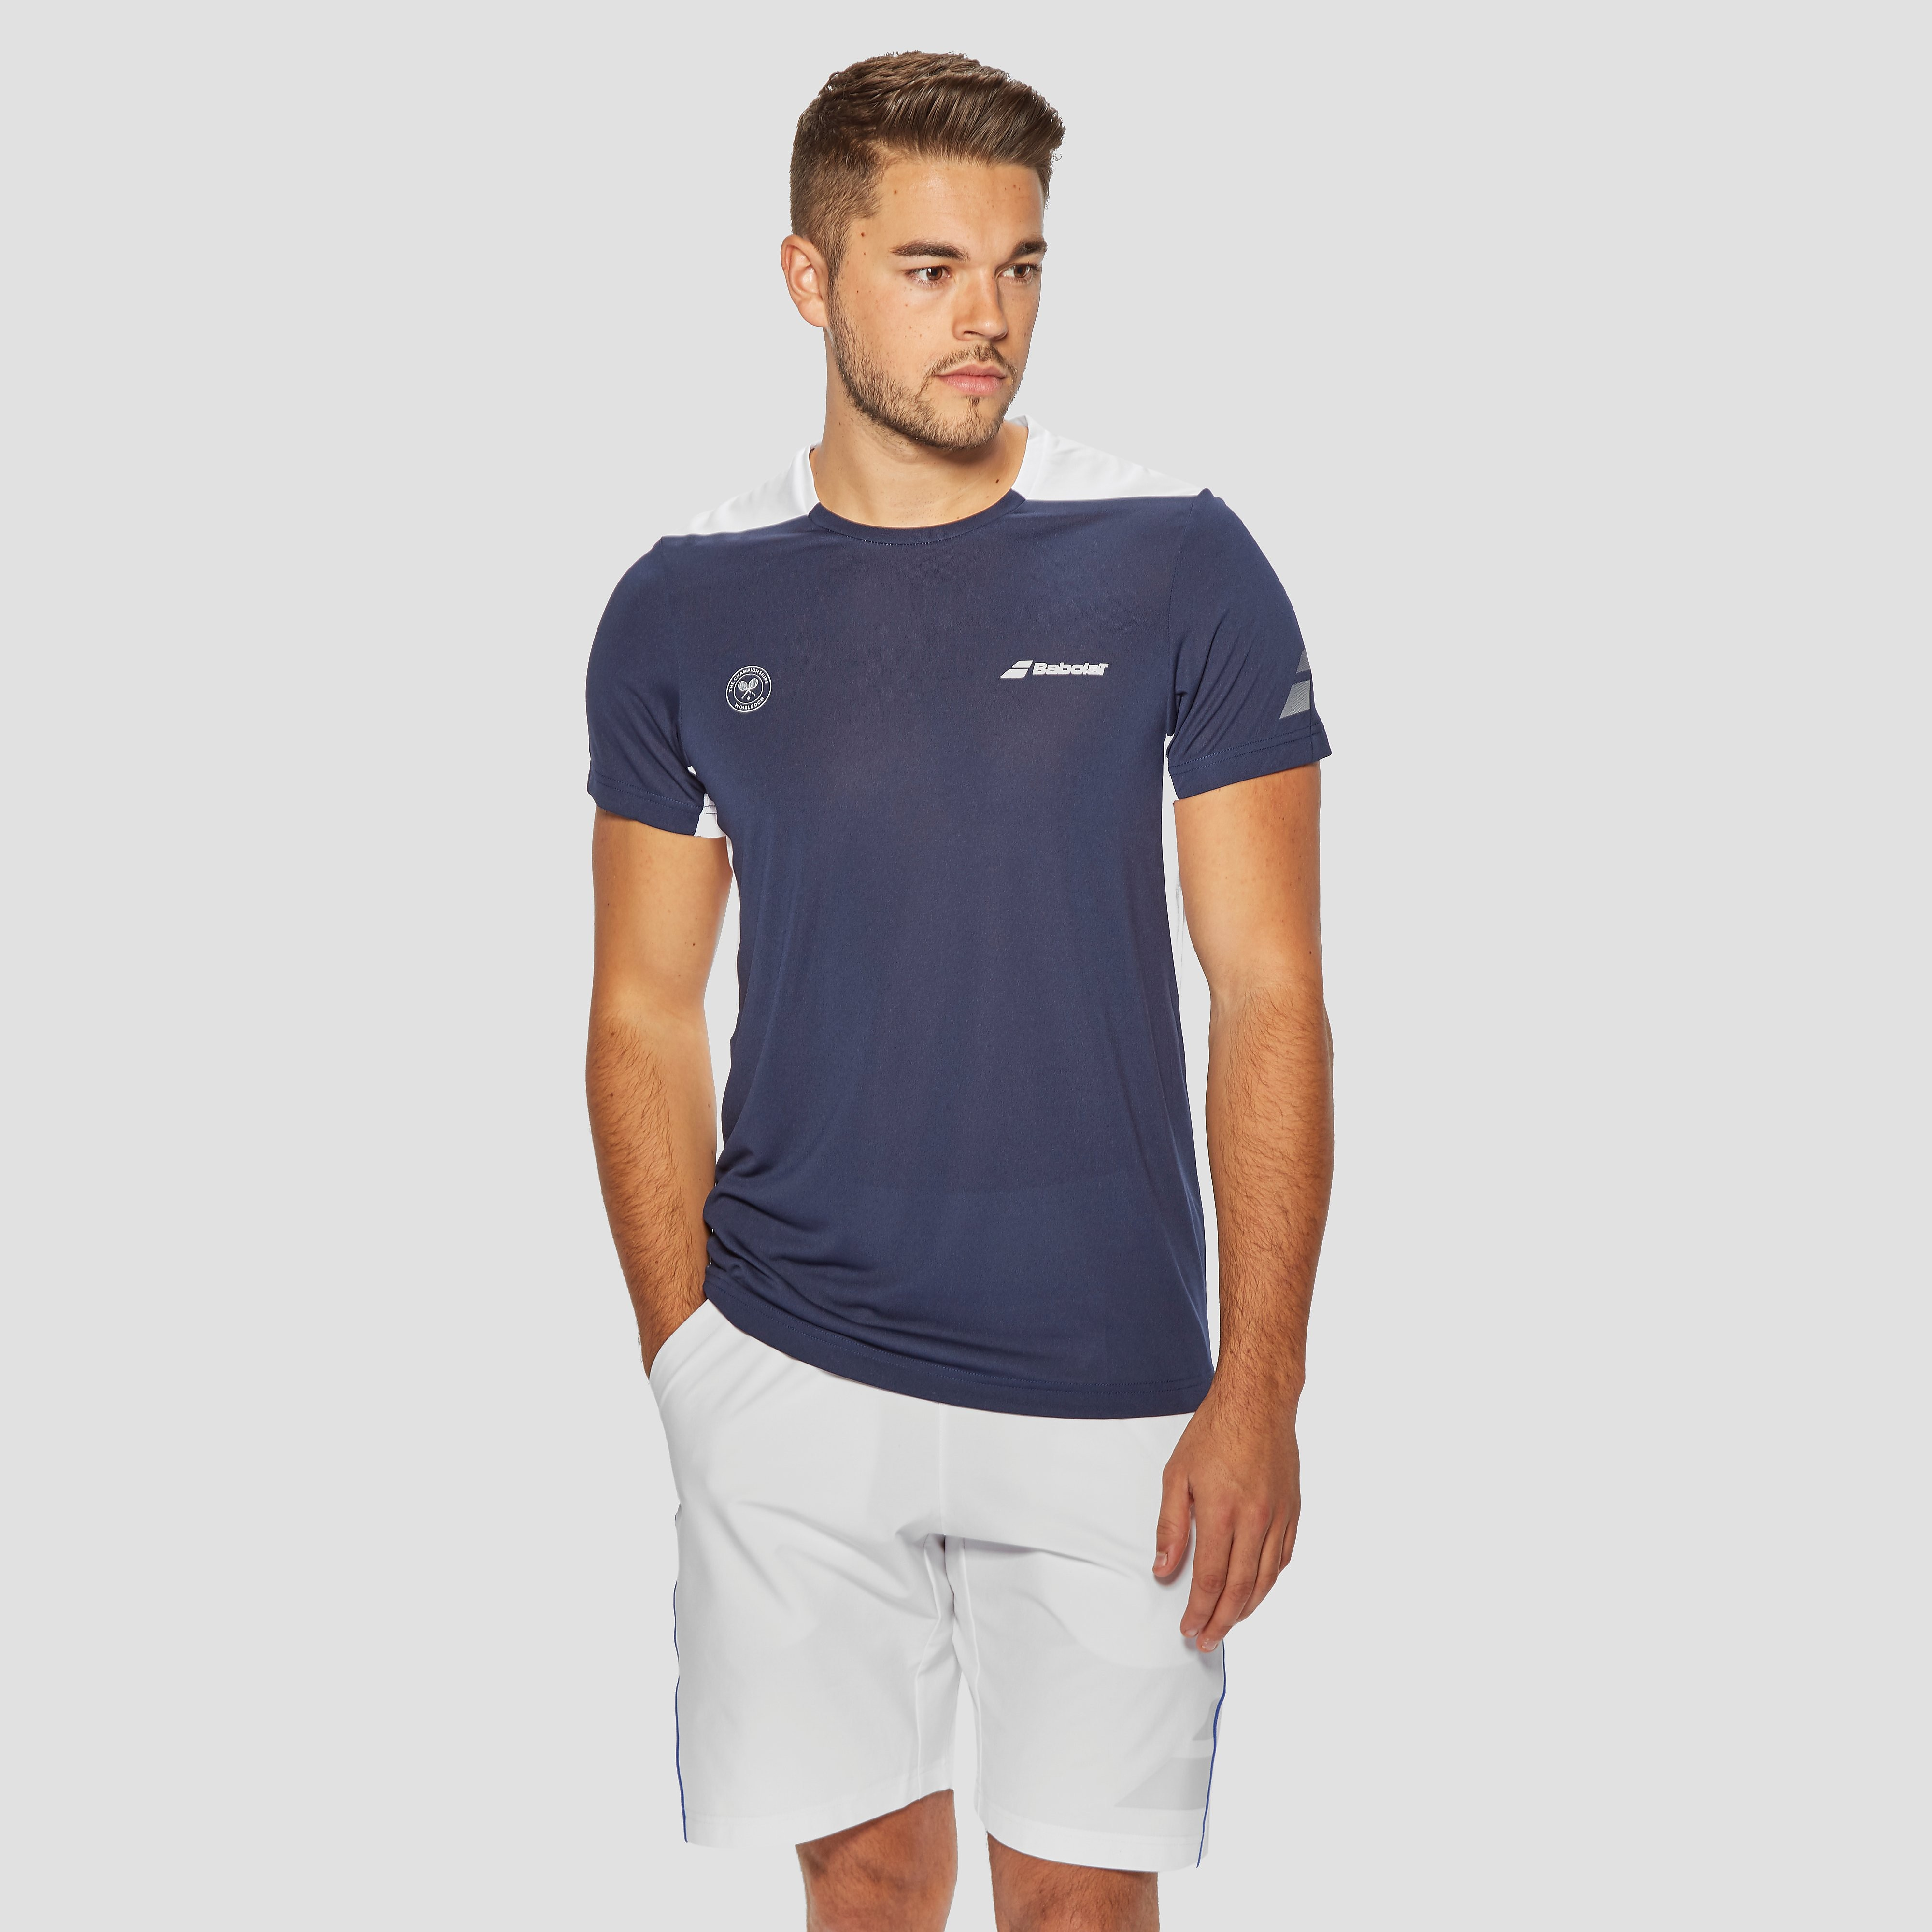 Babolat Wimbledon Performance Men's Crew Neck T-Shirt